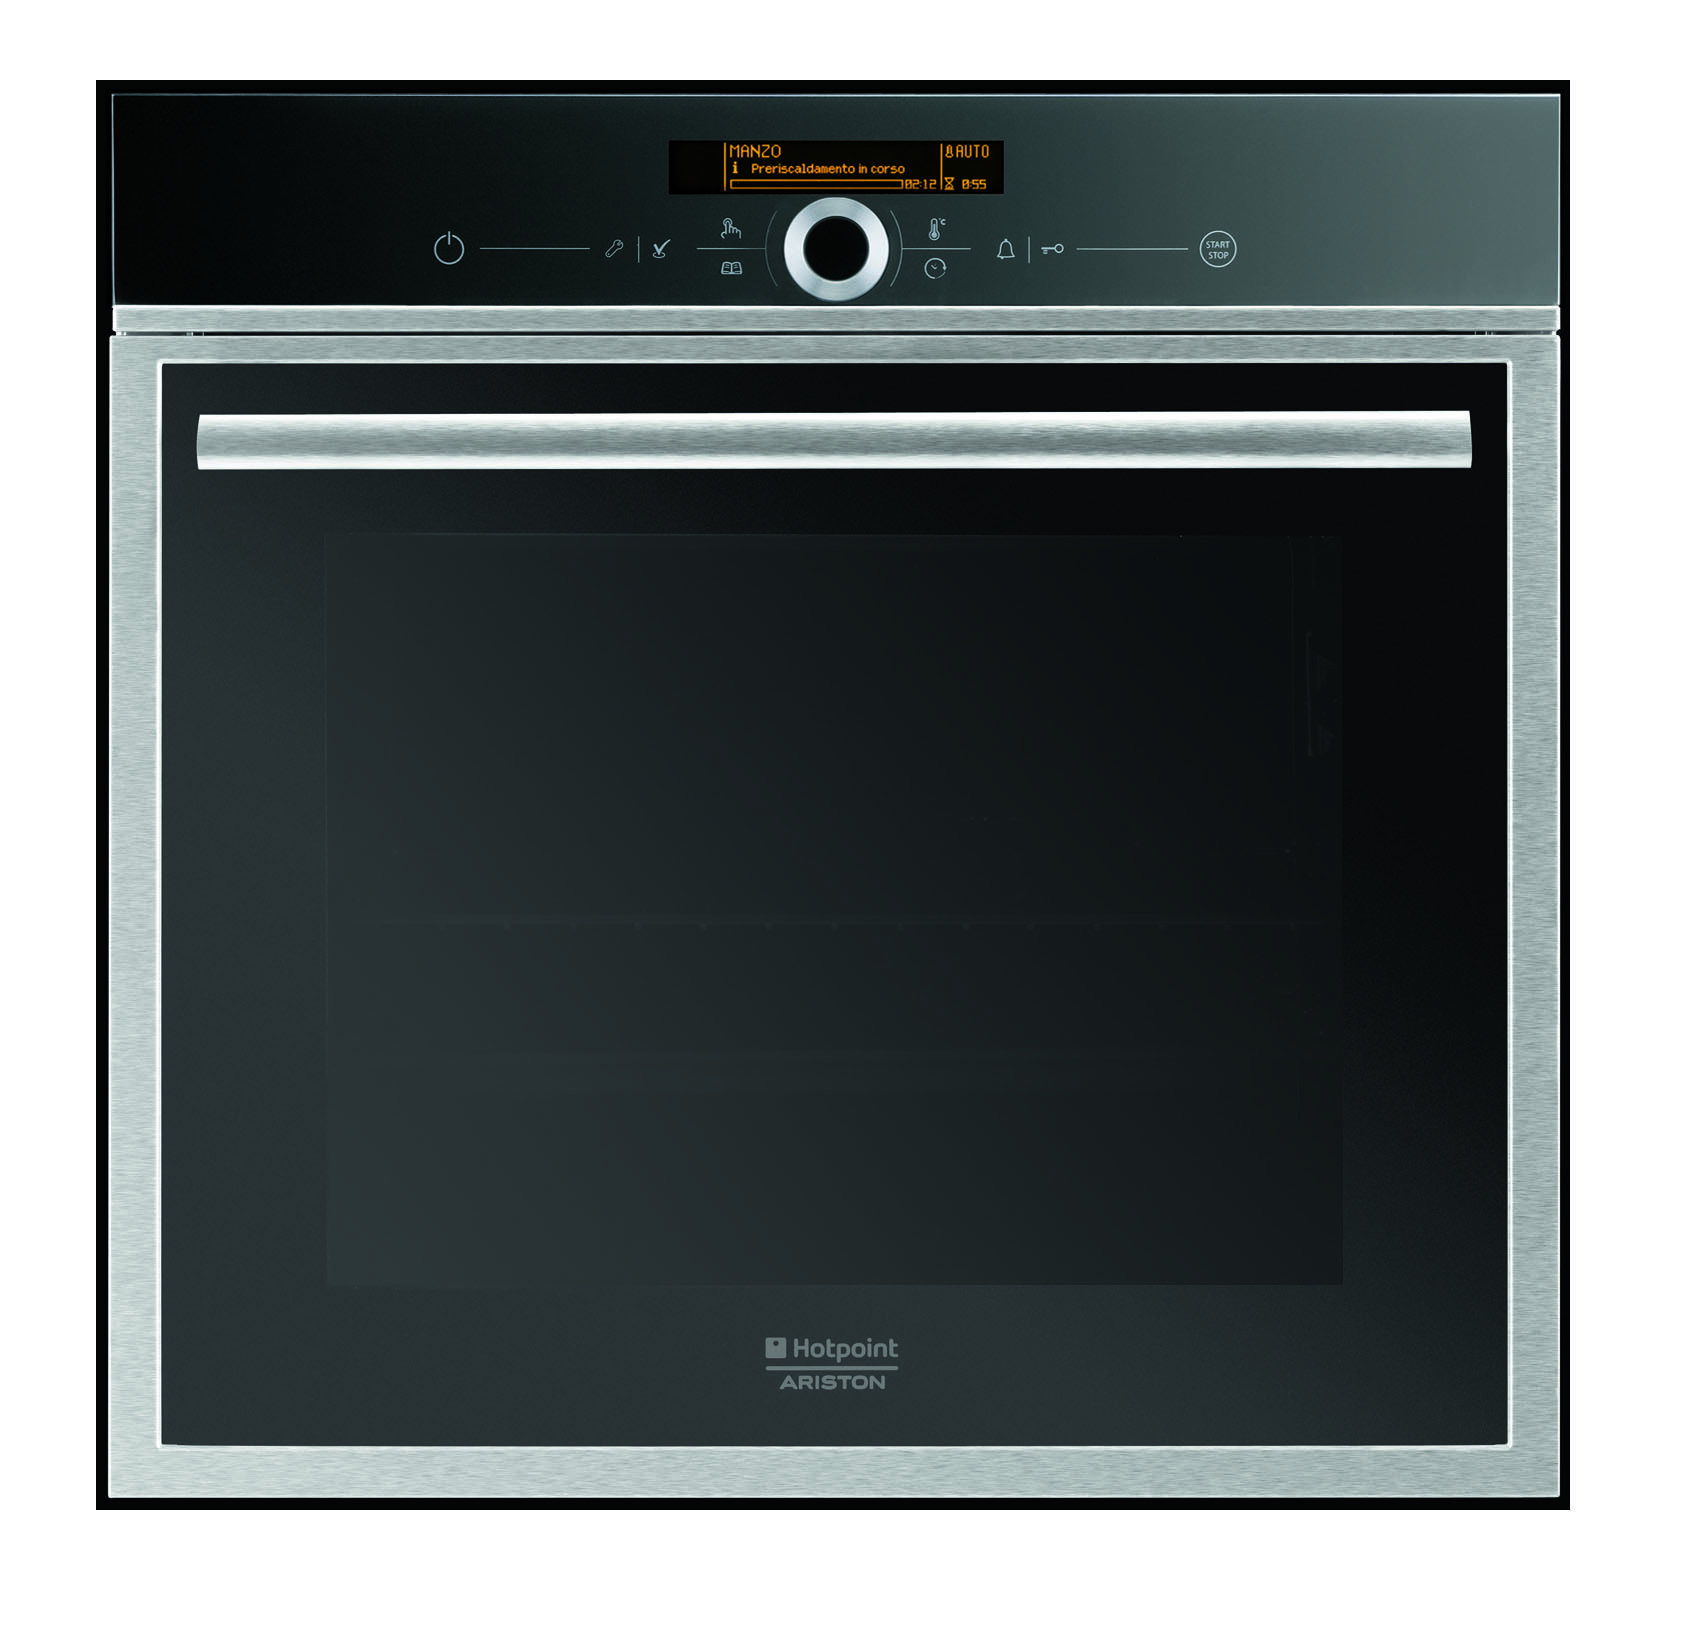 built in steam oven hotpoint ariston msk103xhas. Black Bedroom Furniture Sets. Home Design Ideas